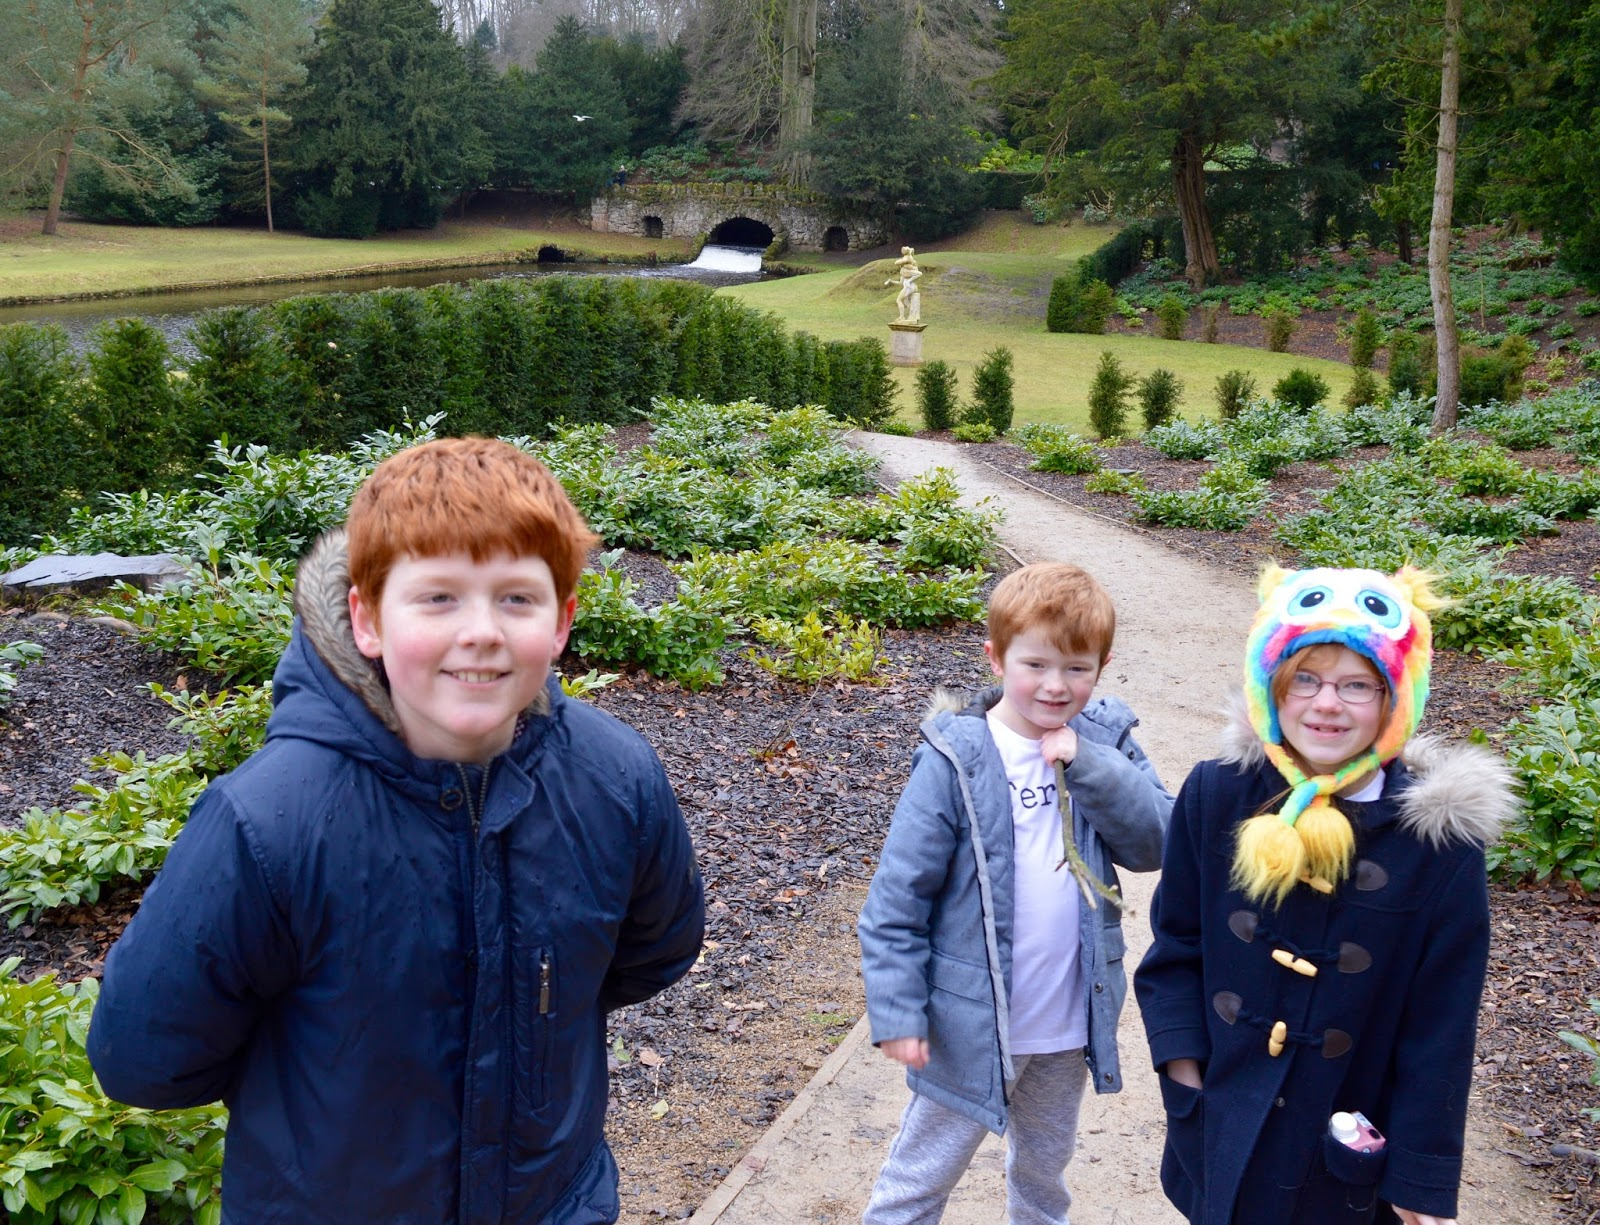 The Best Family Days Out in North Yorkshire  - Fountains Abbey